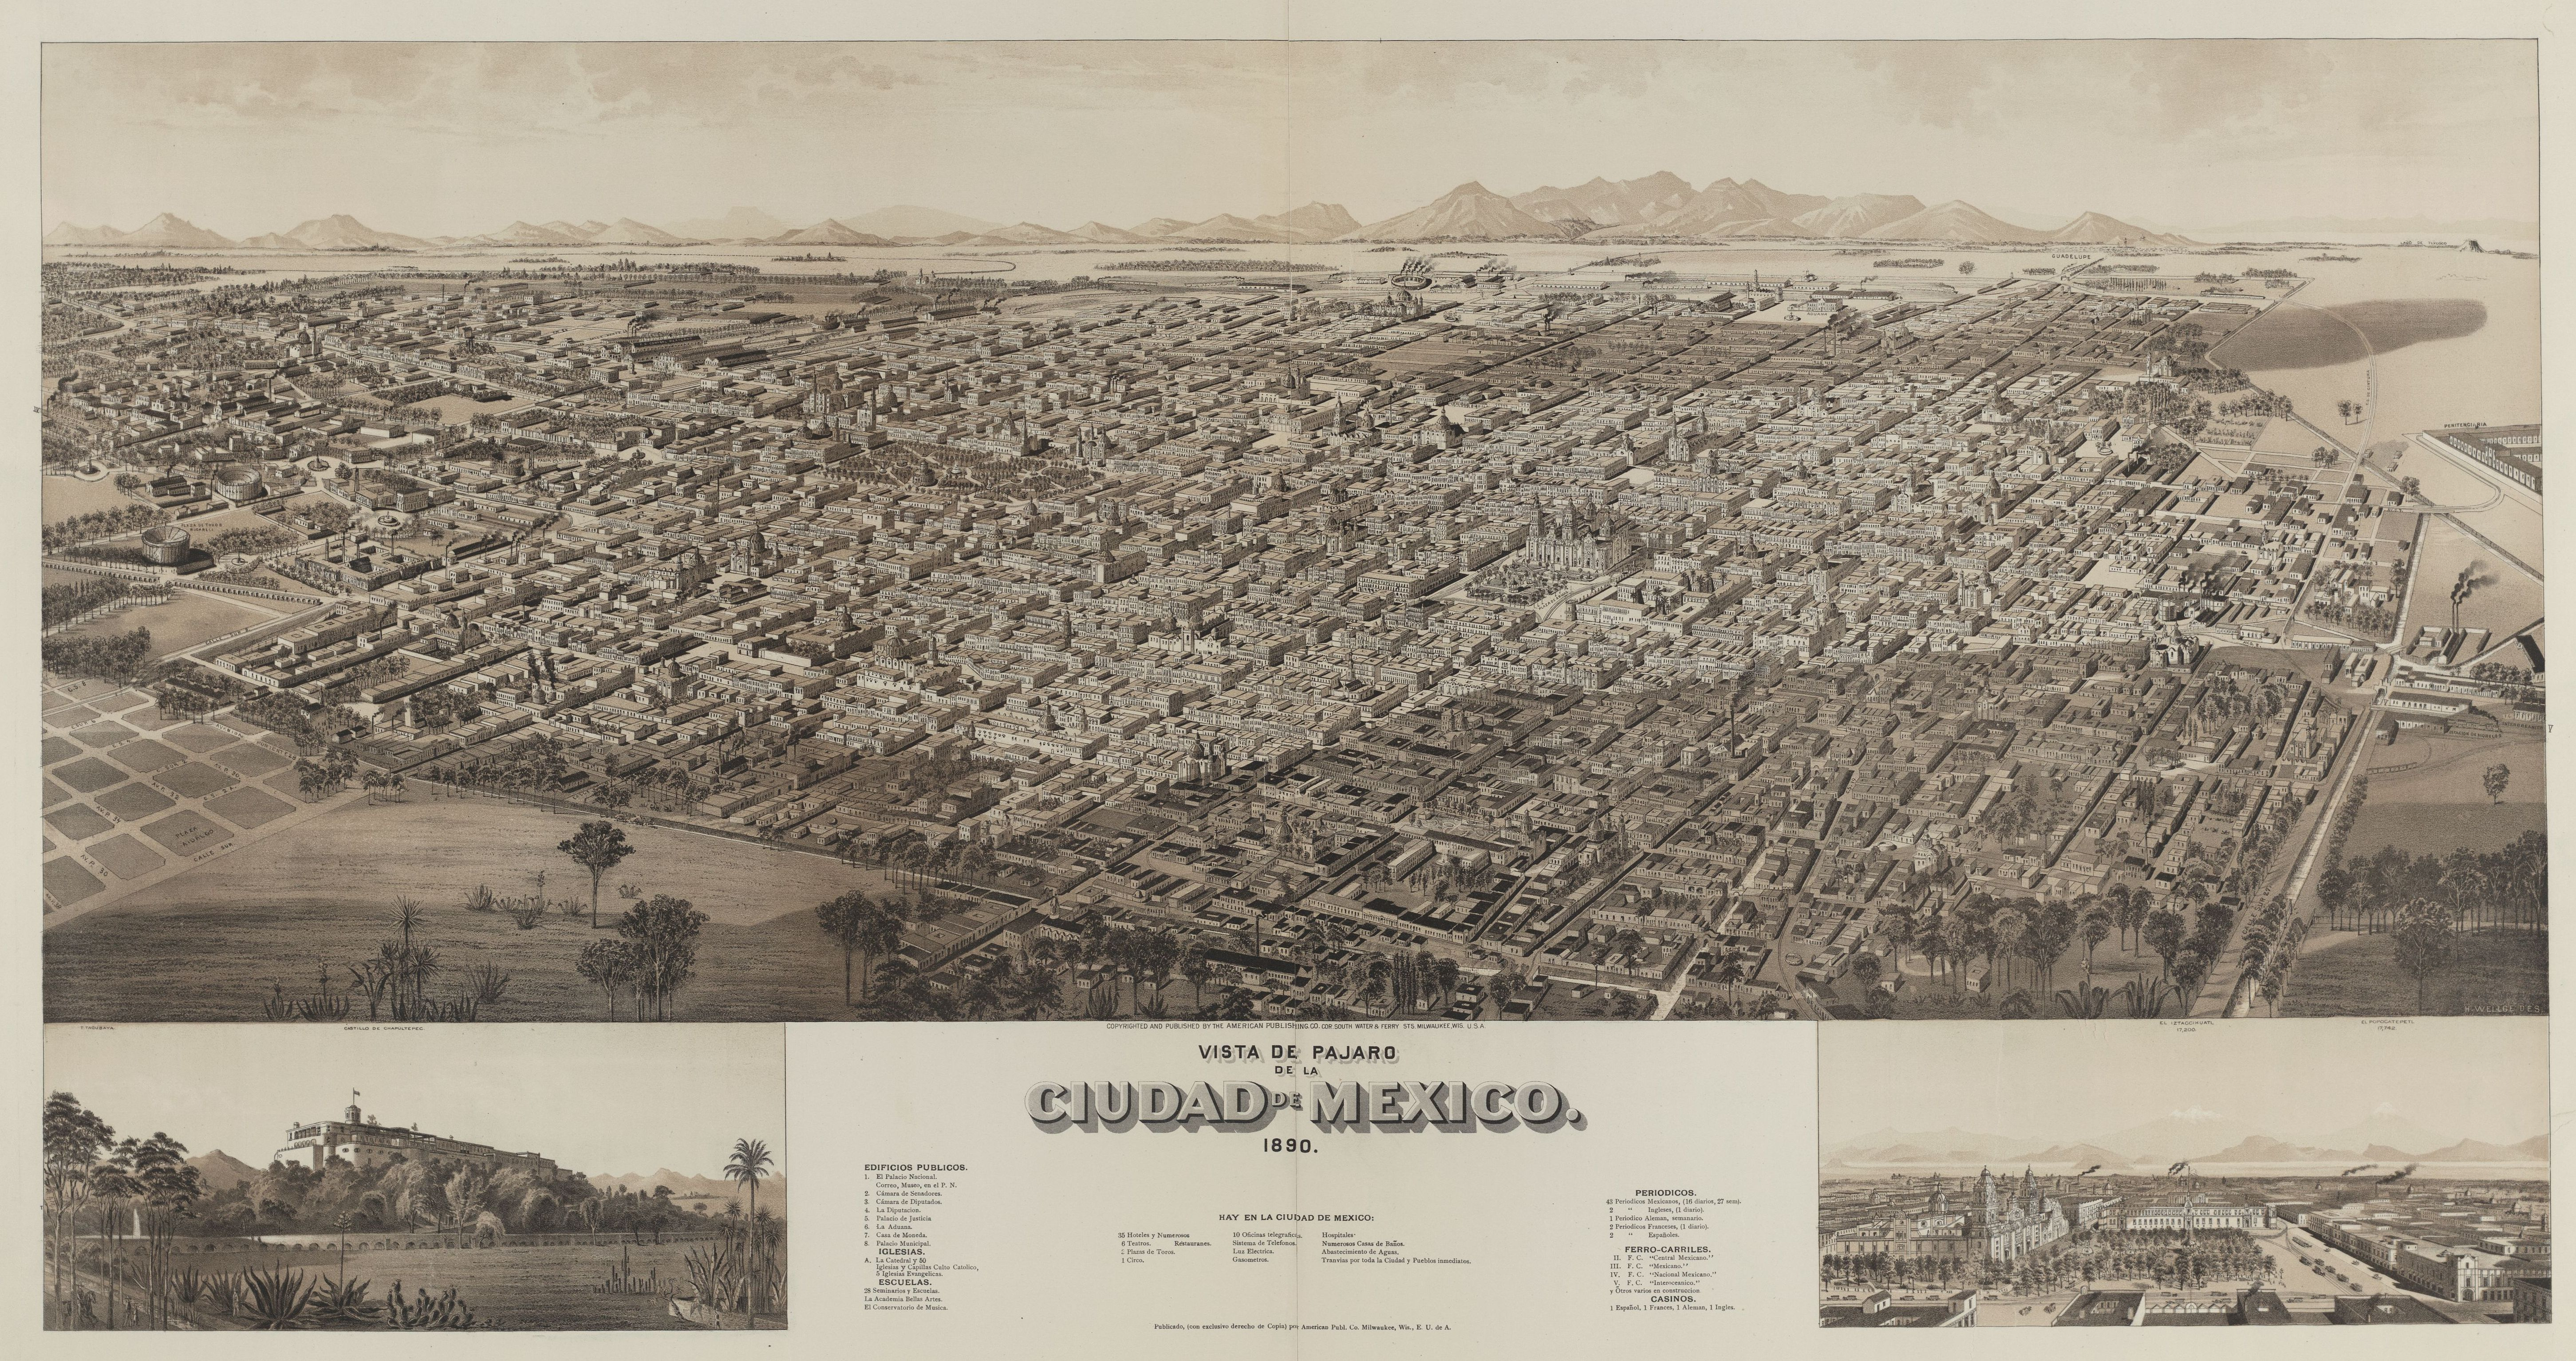 history of mexico city 1910 essay Later editions of this book include essays on politics, comparing various  the  mexican revolution has long inspired writers, artists and  the wind that swept  mexico: the history of the mexican revolution of 1910-1942:.